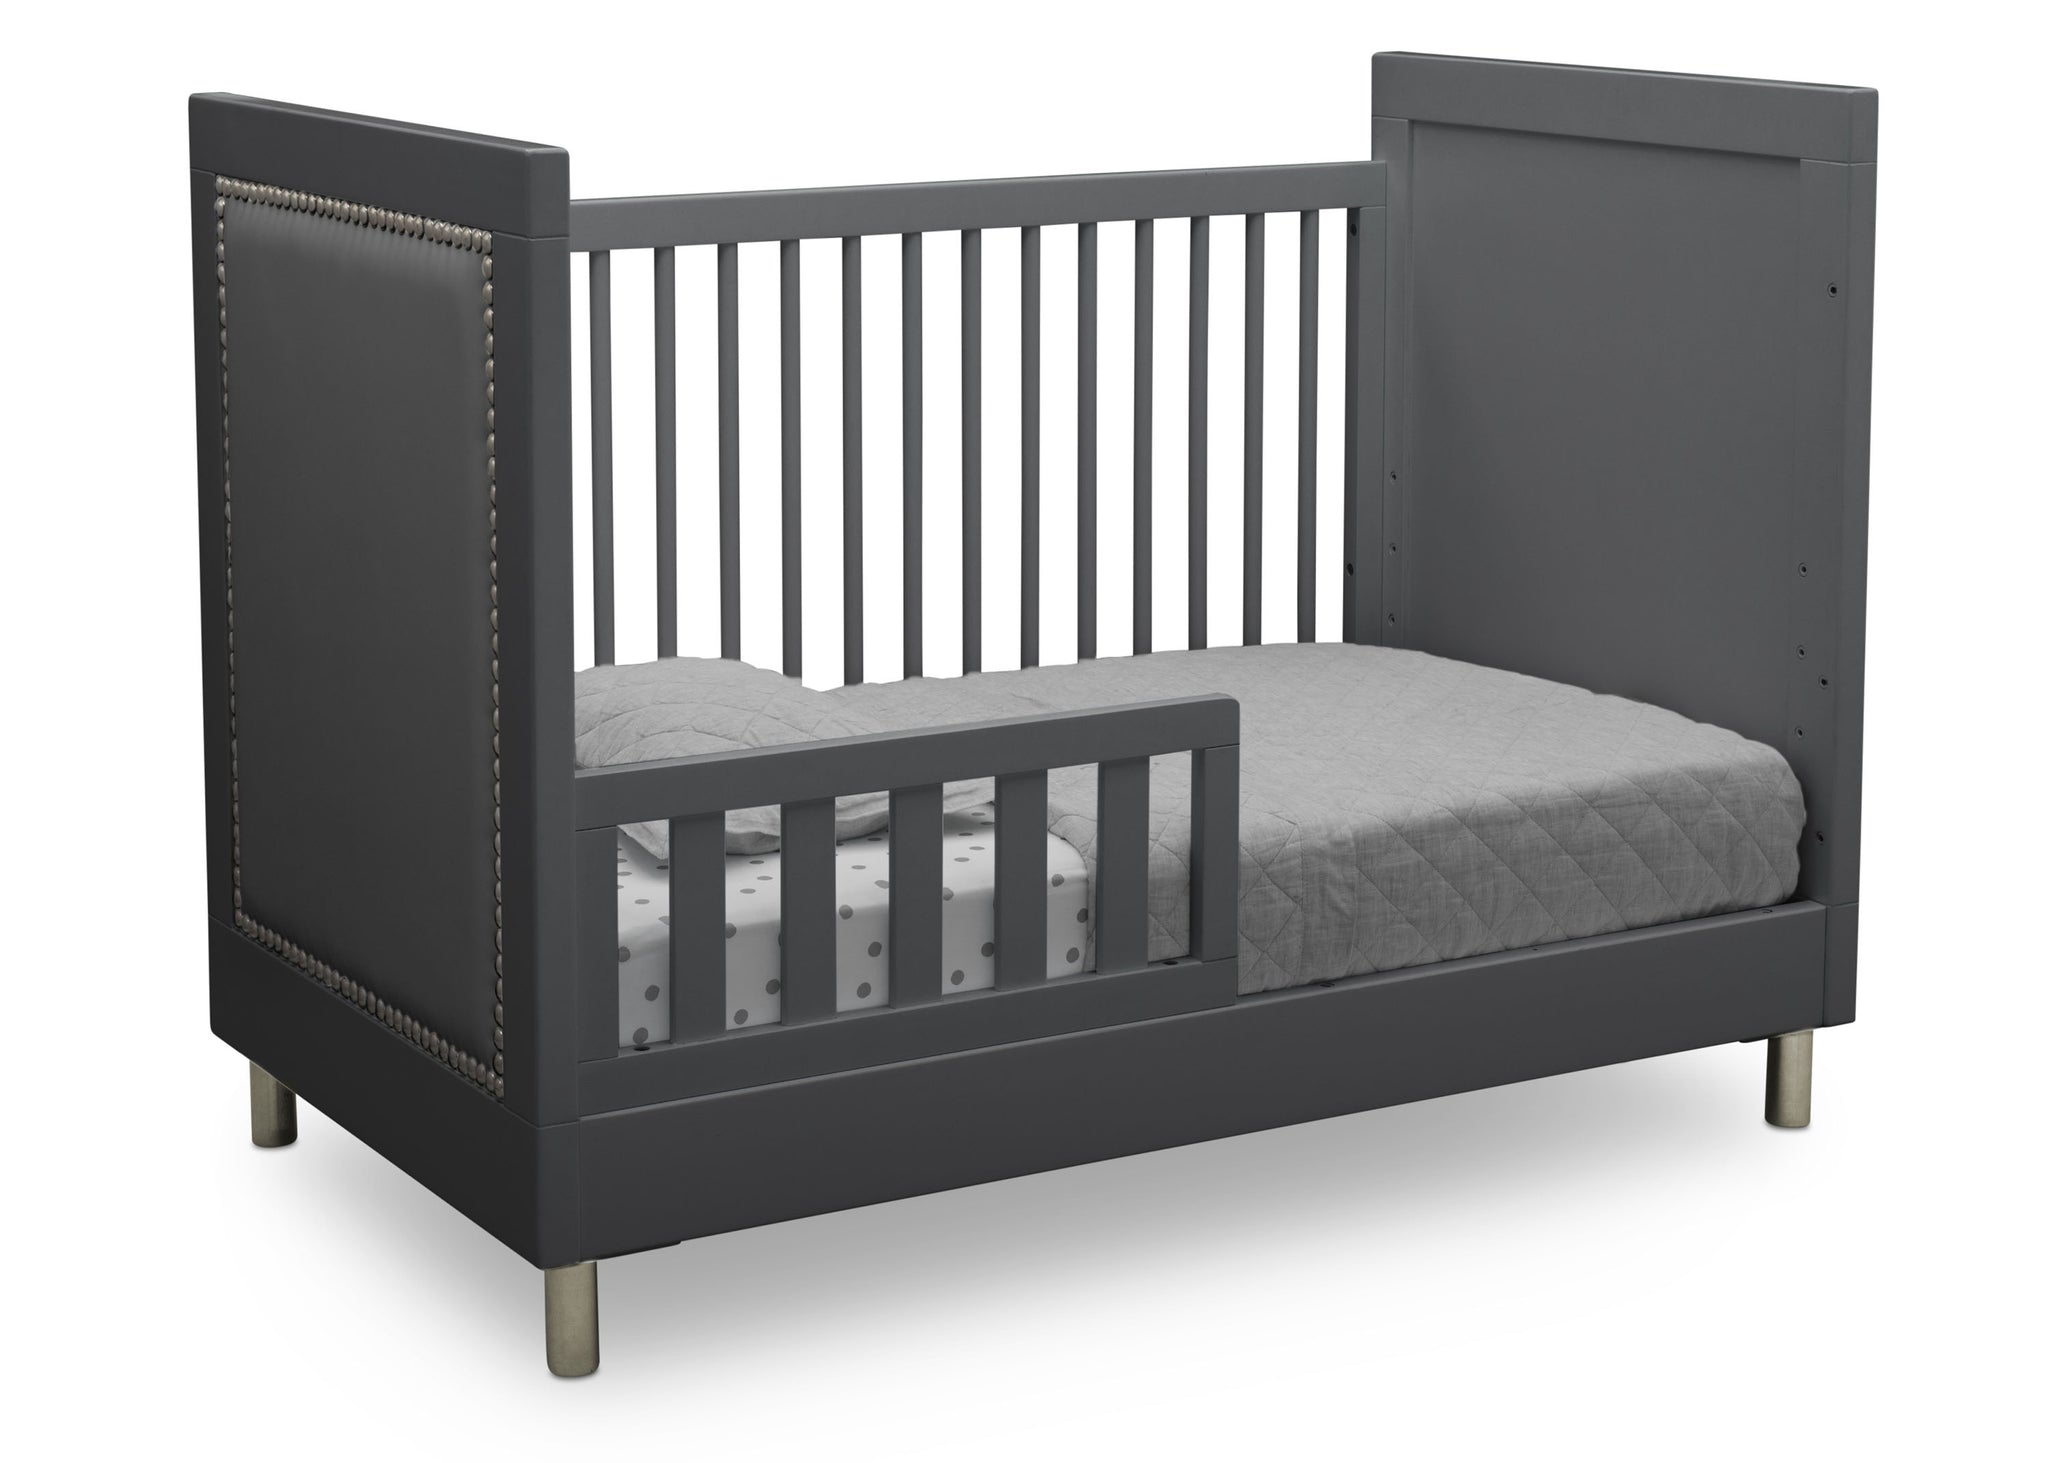 Simmons Kids Charcoal Grey (1323) Avery 3-in-1 Convertible Crib, Right Toddler Bed Silo View